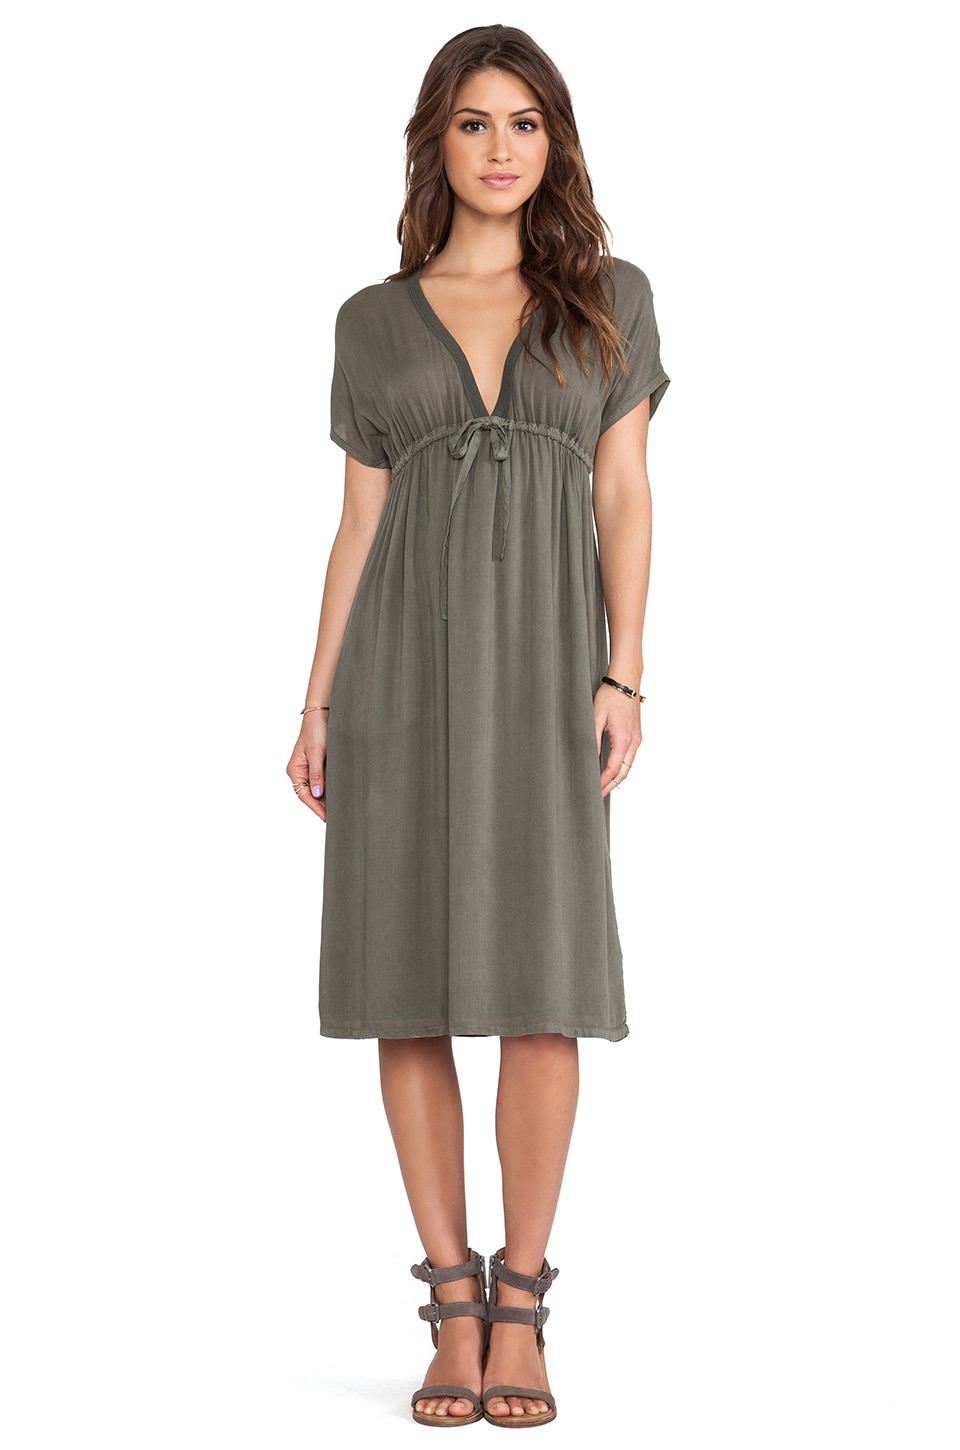 James Perse Empire Dress in Safari